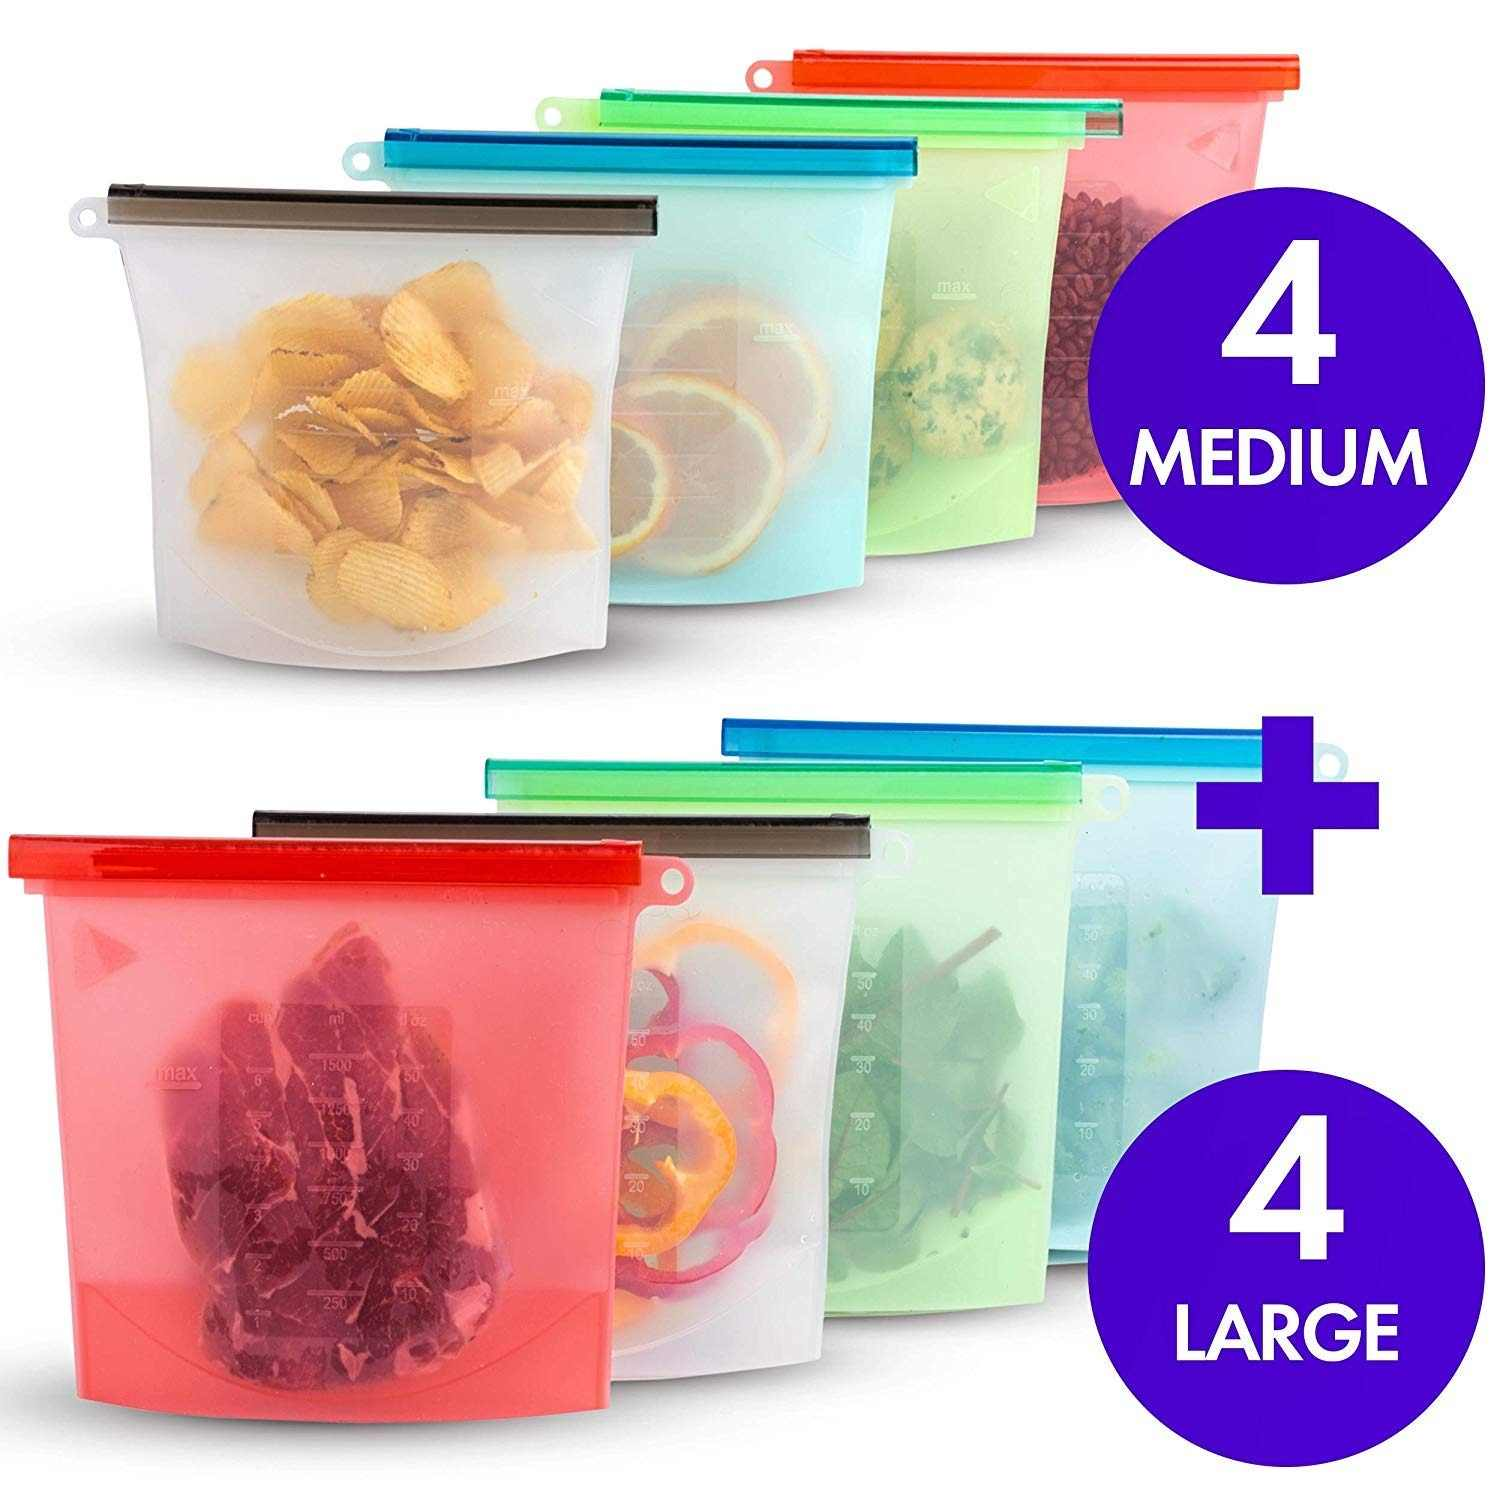 1000ml 1500ml Silicone Storage Bag Reusable Silicone Food Storage Bags For Food Seal Ziplock Freezer Cooking Fresh Bags